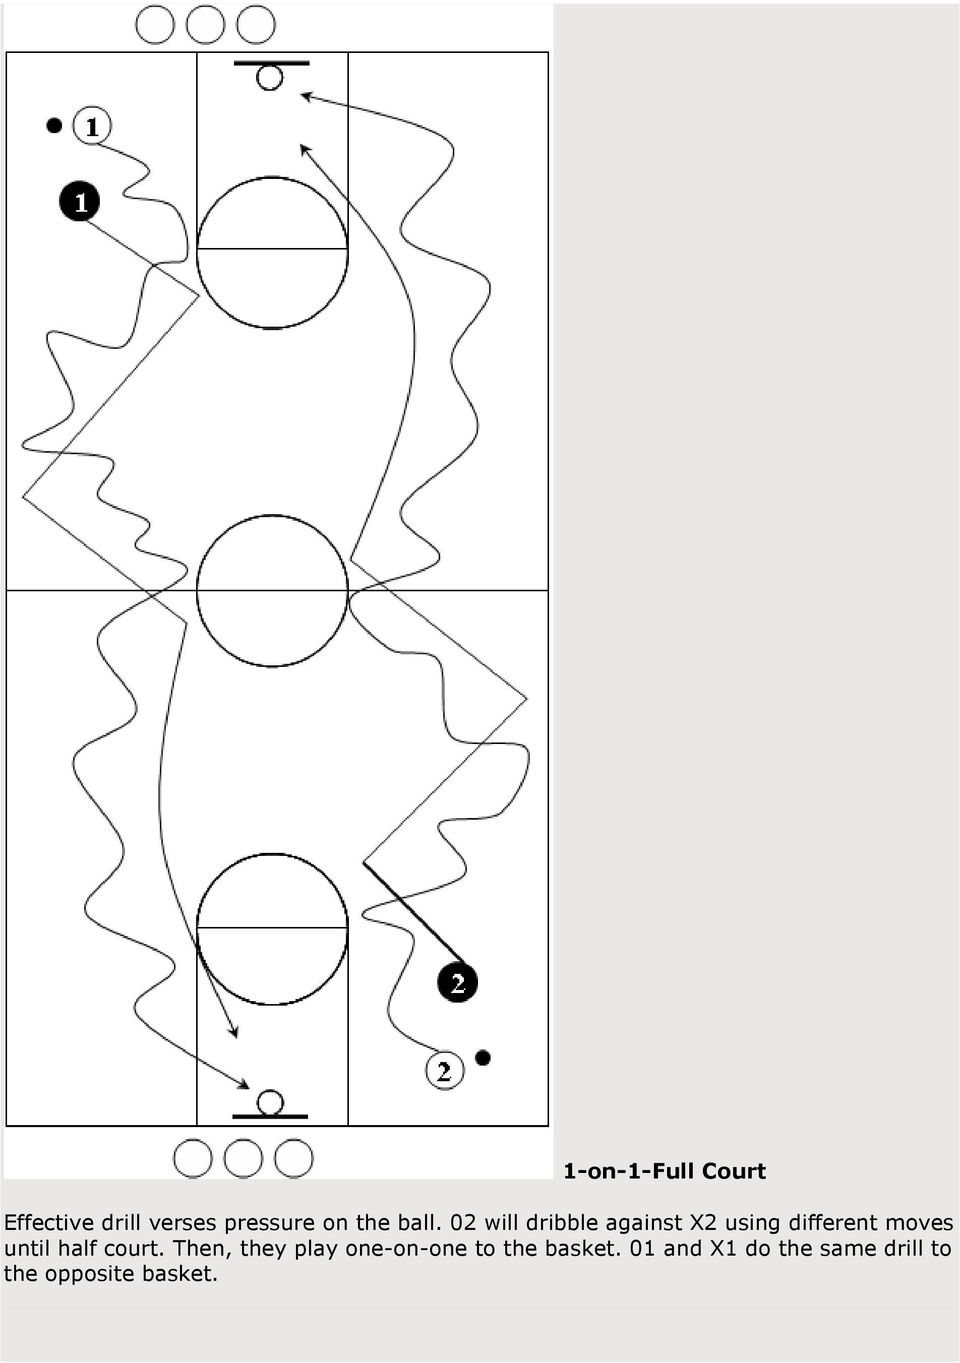 02 will dribble against X2 using different moves until